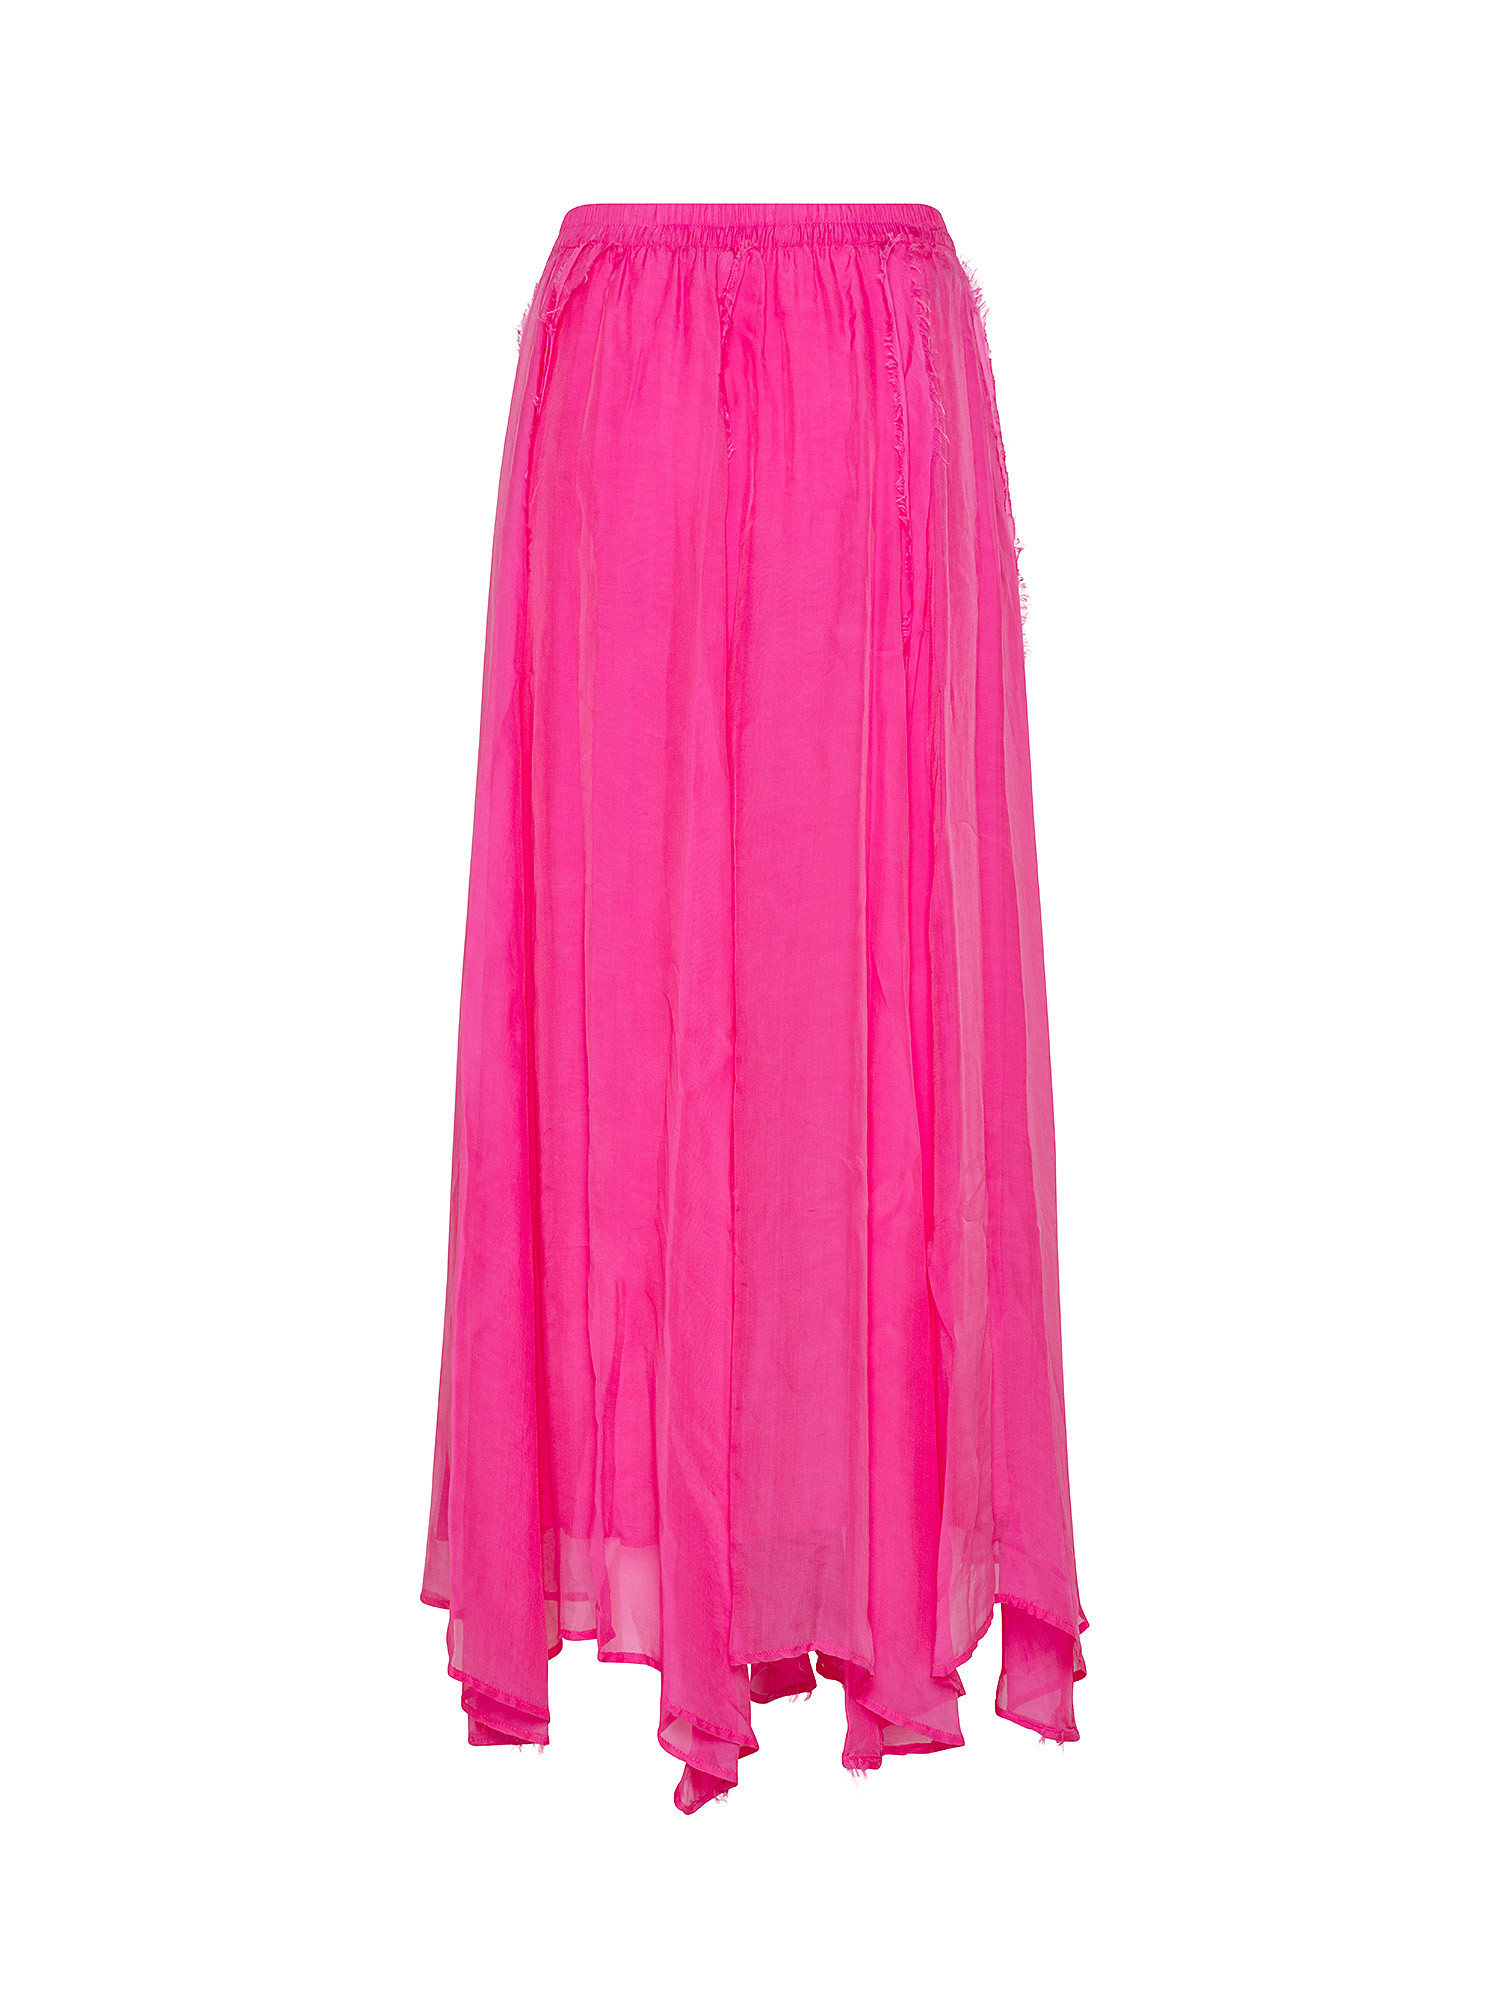 Gonna in chiffon  Chili, Rosa fuxia, large image number 1